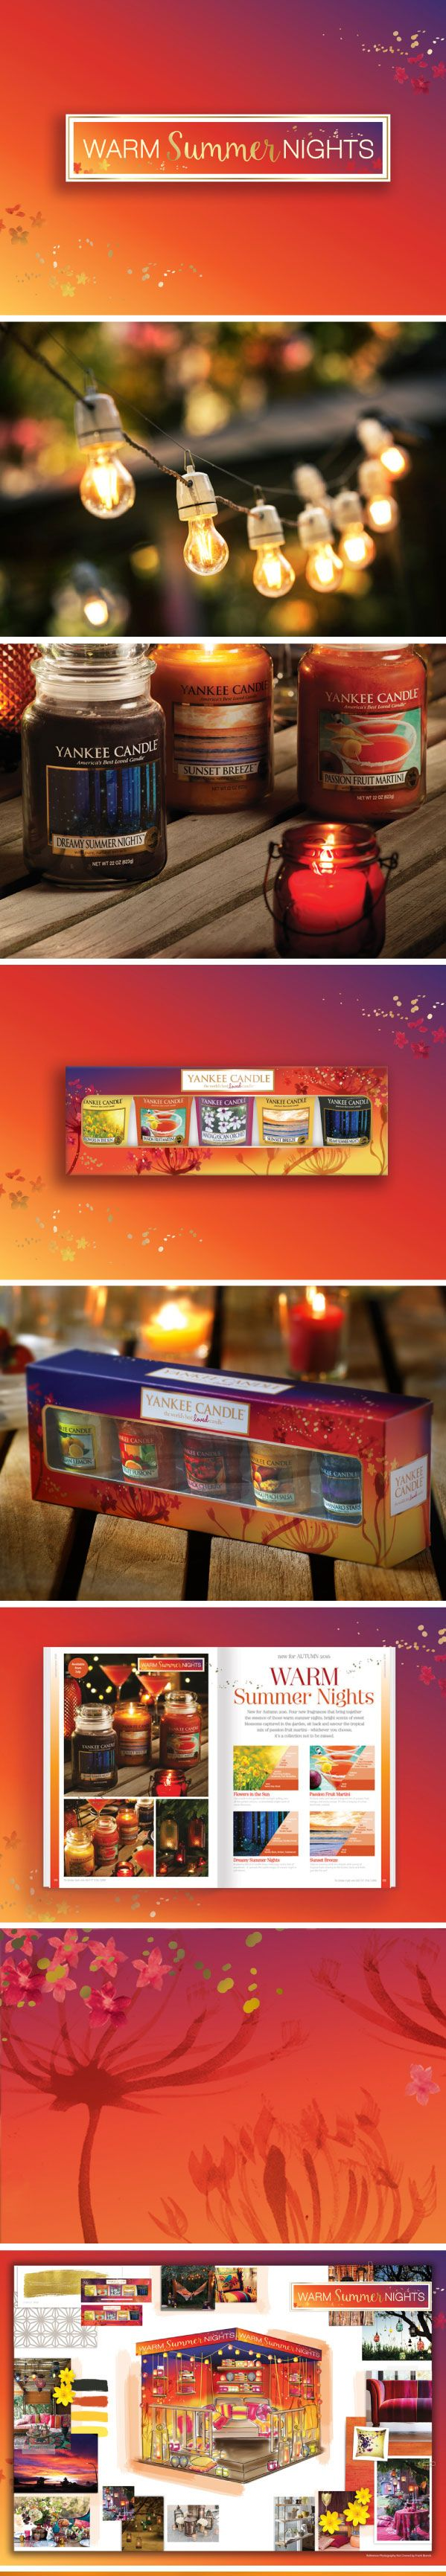 Yankee Candle Warm Summer Nights: Thematic & Activation: Campaign Identity   Gift Packaging  POS   Trade Show Stand   Literature